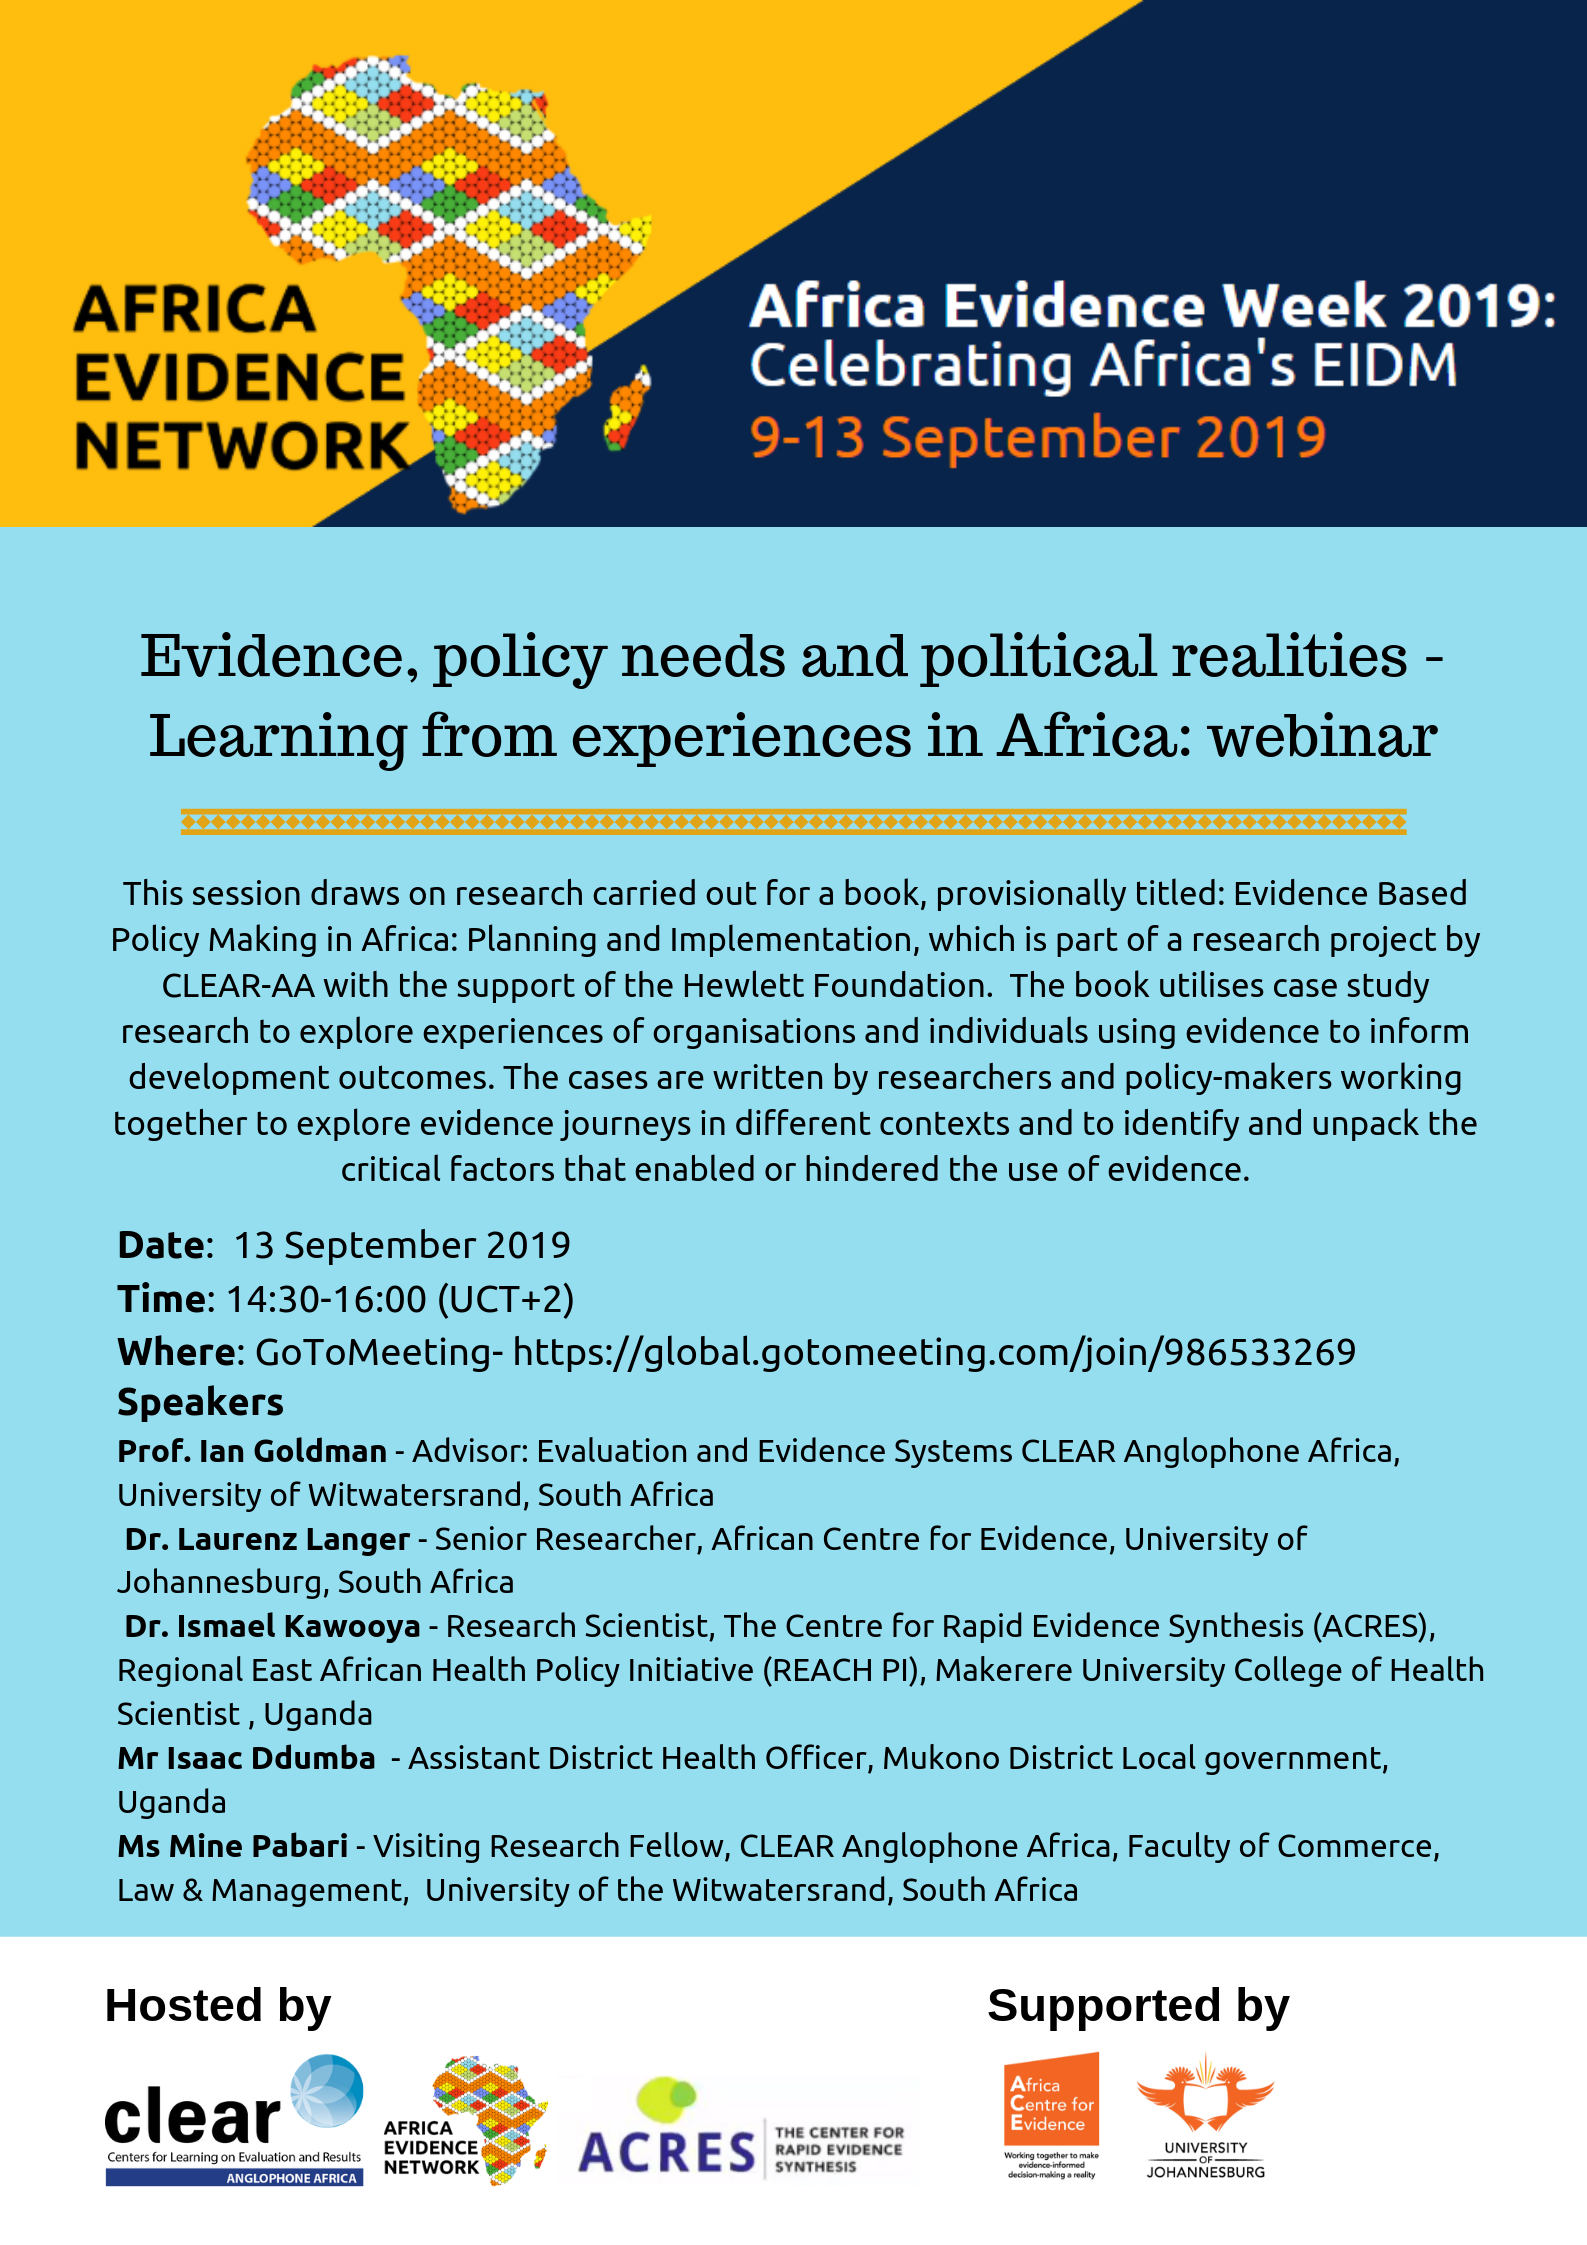 Evidence, policy needs and political realities - Learning from experiences in Africa